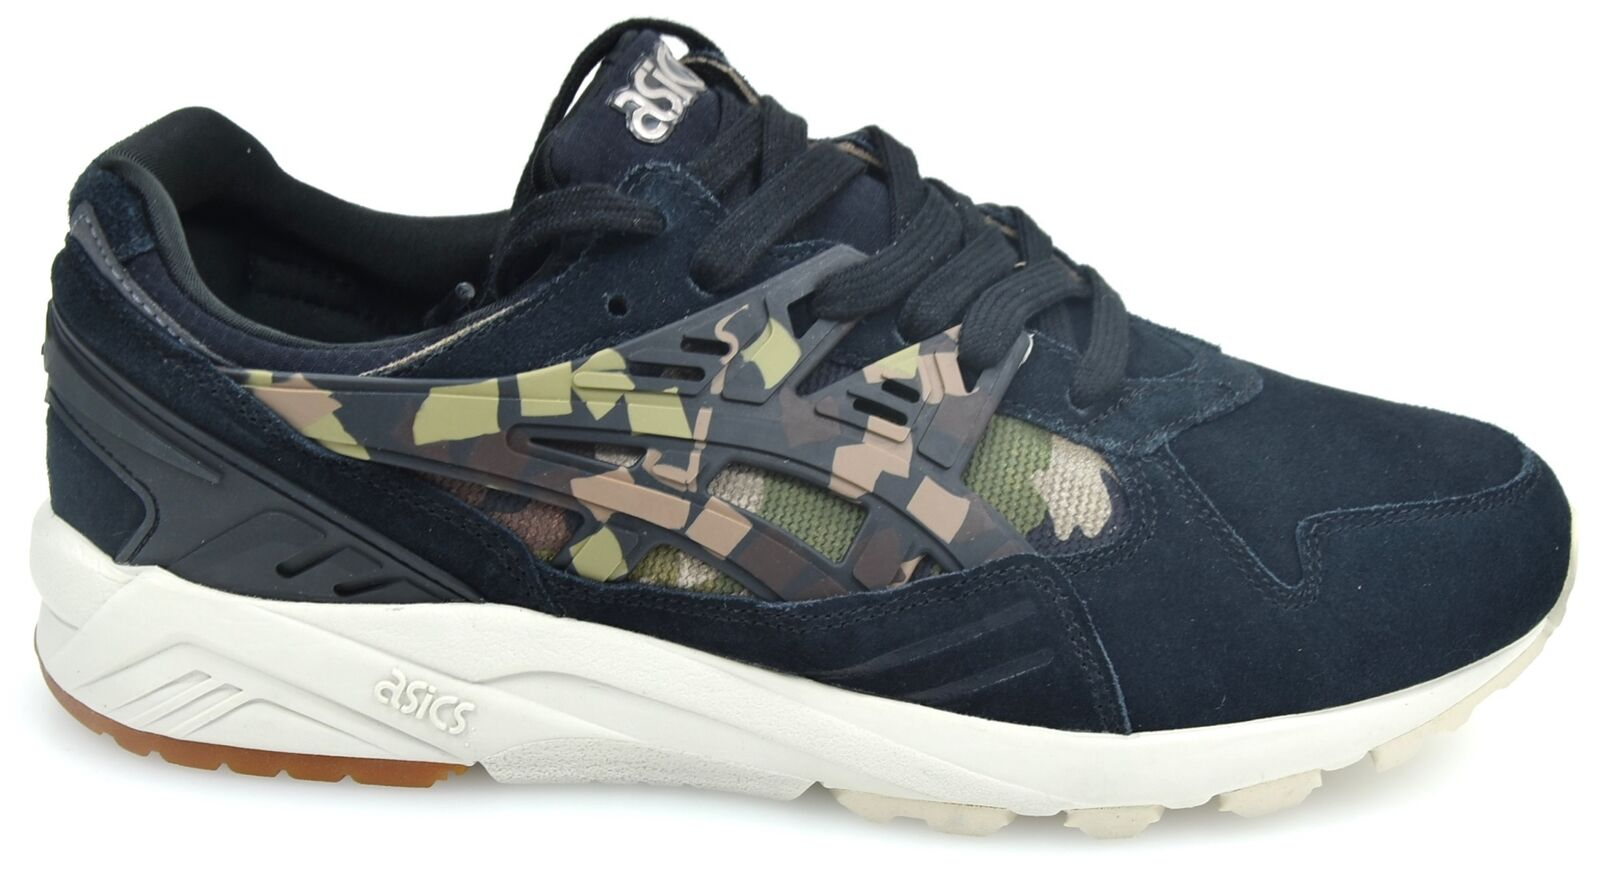 ASICS MAN FREE TIME CASUAL SNEAKER SHOES SUEDE CODE CODE CODE HL7C1 GEL-KAYANO TRAINER d27d12